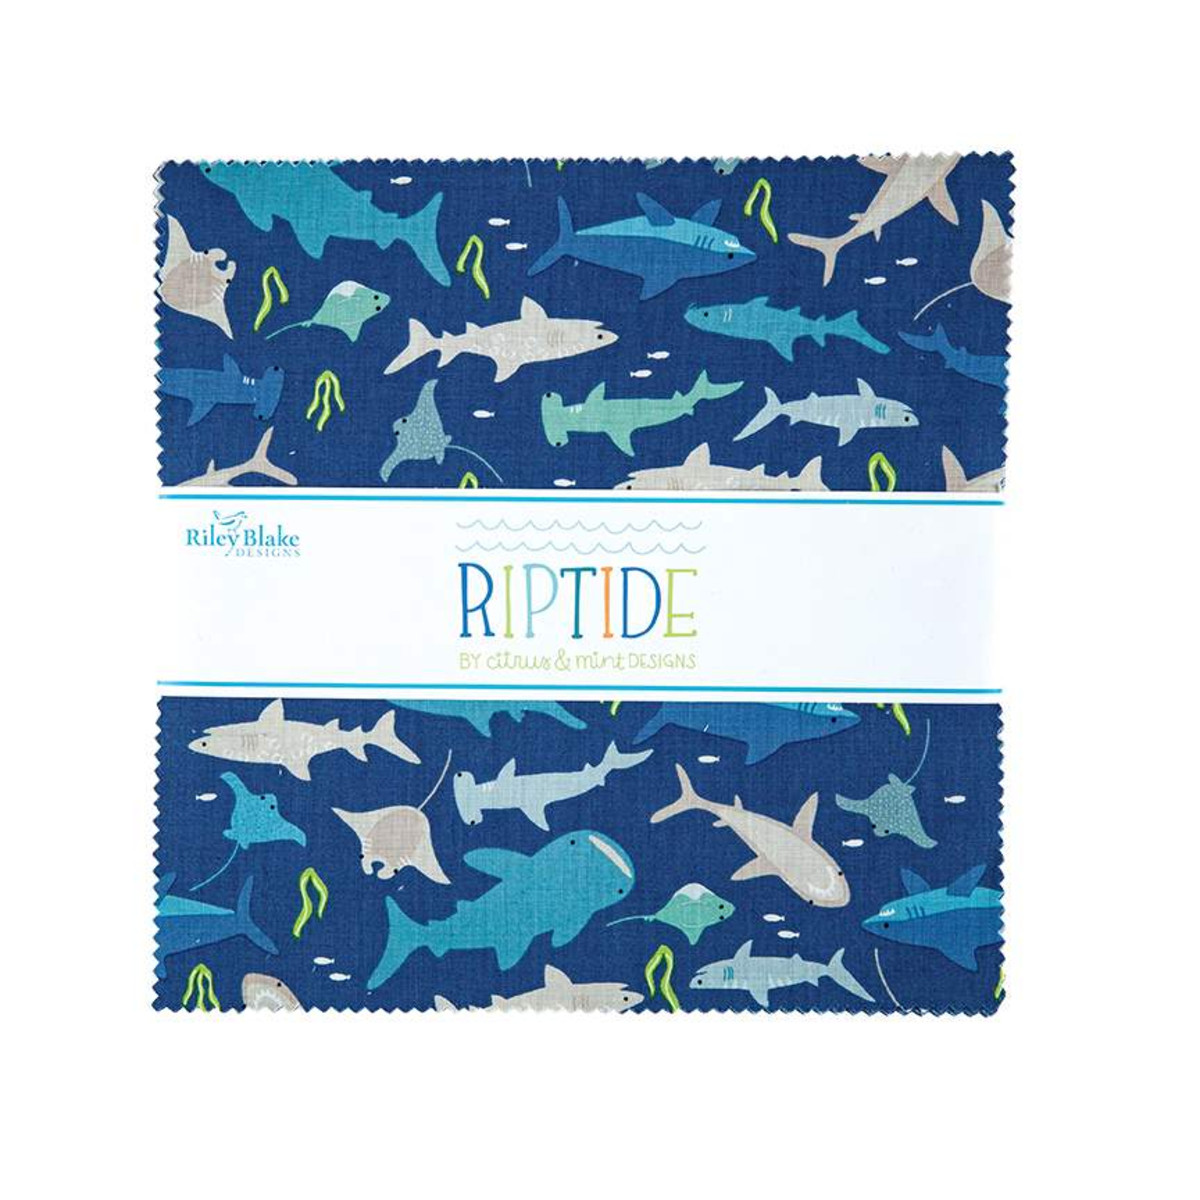 Riley Blake Layer Cake - Riptide by Citrus & Mint Designs